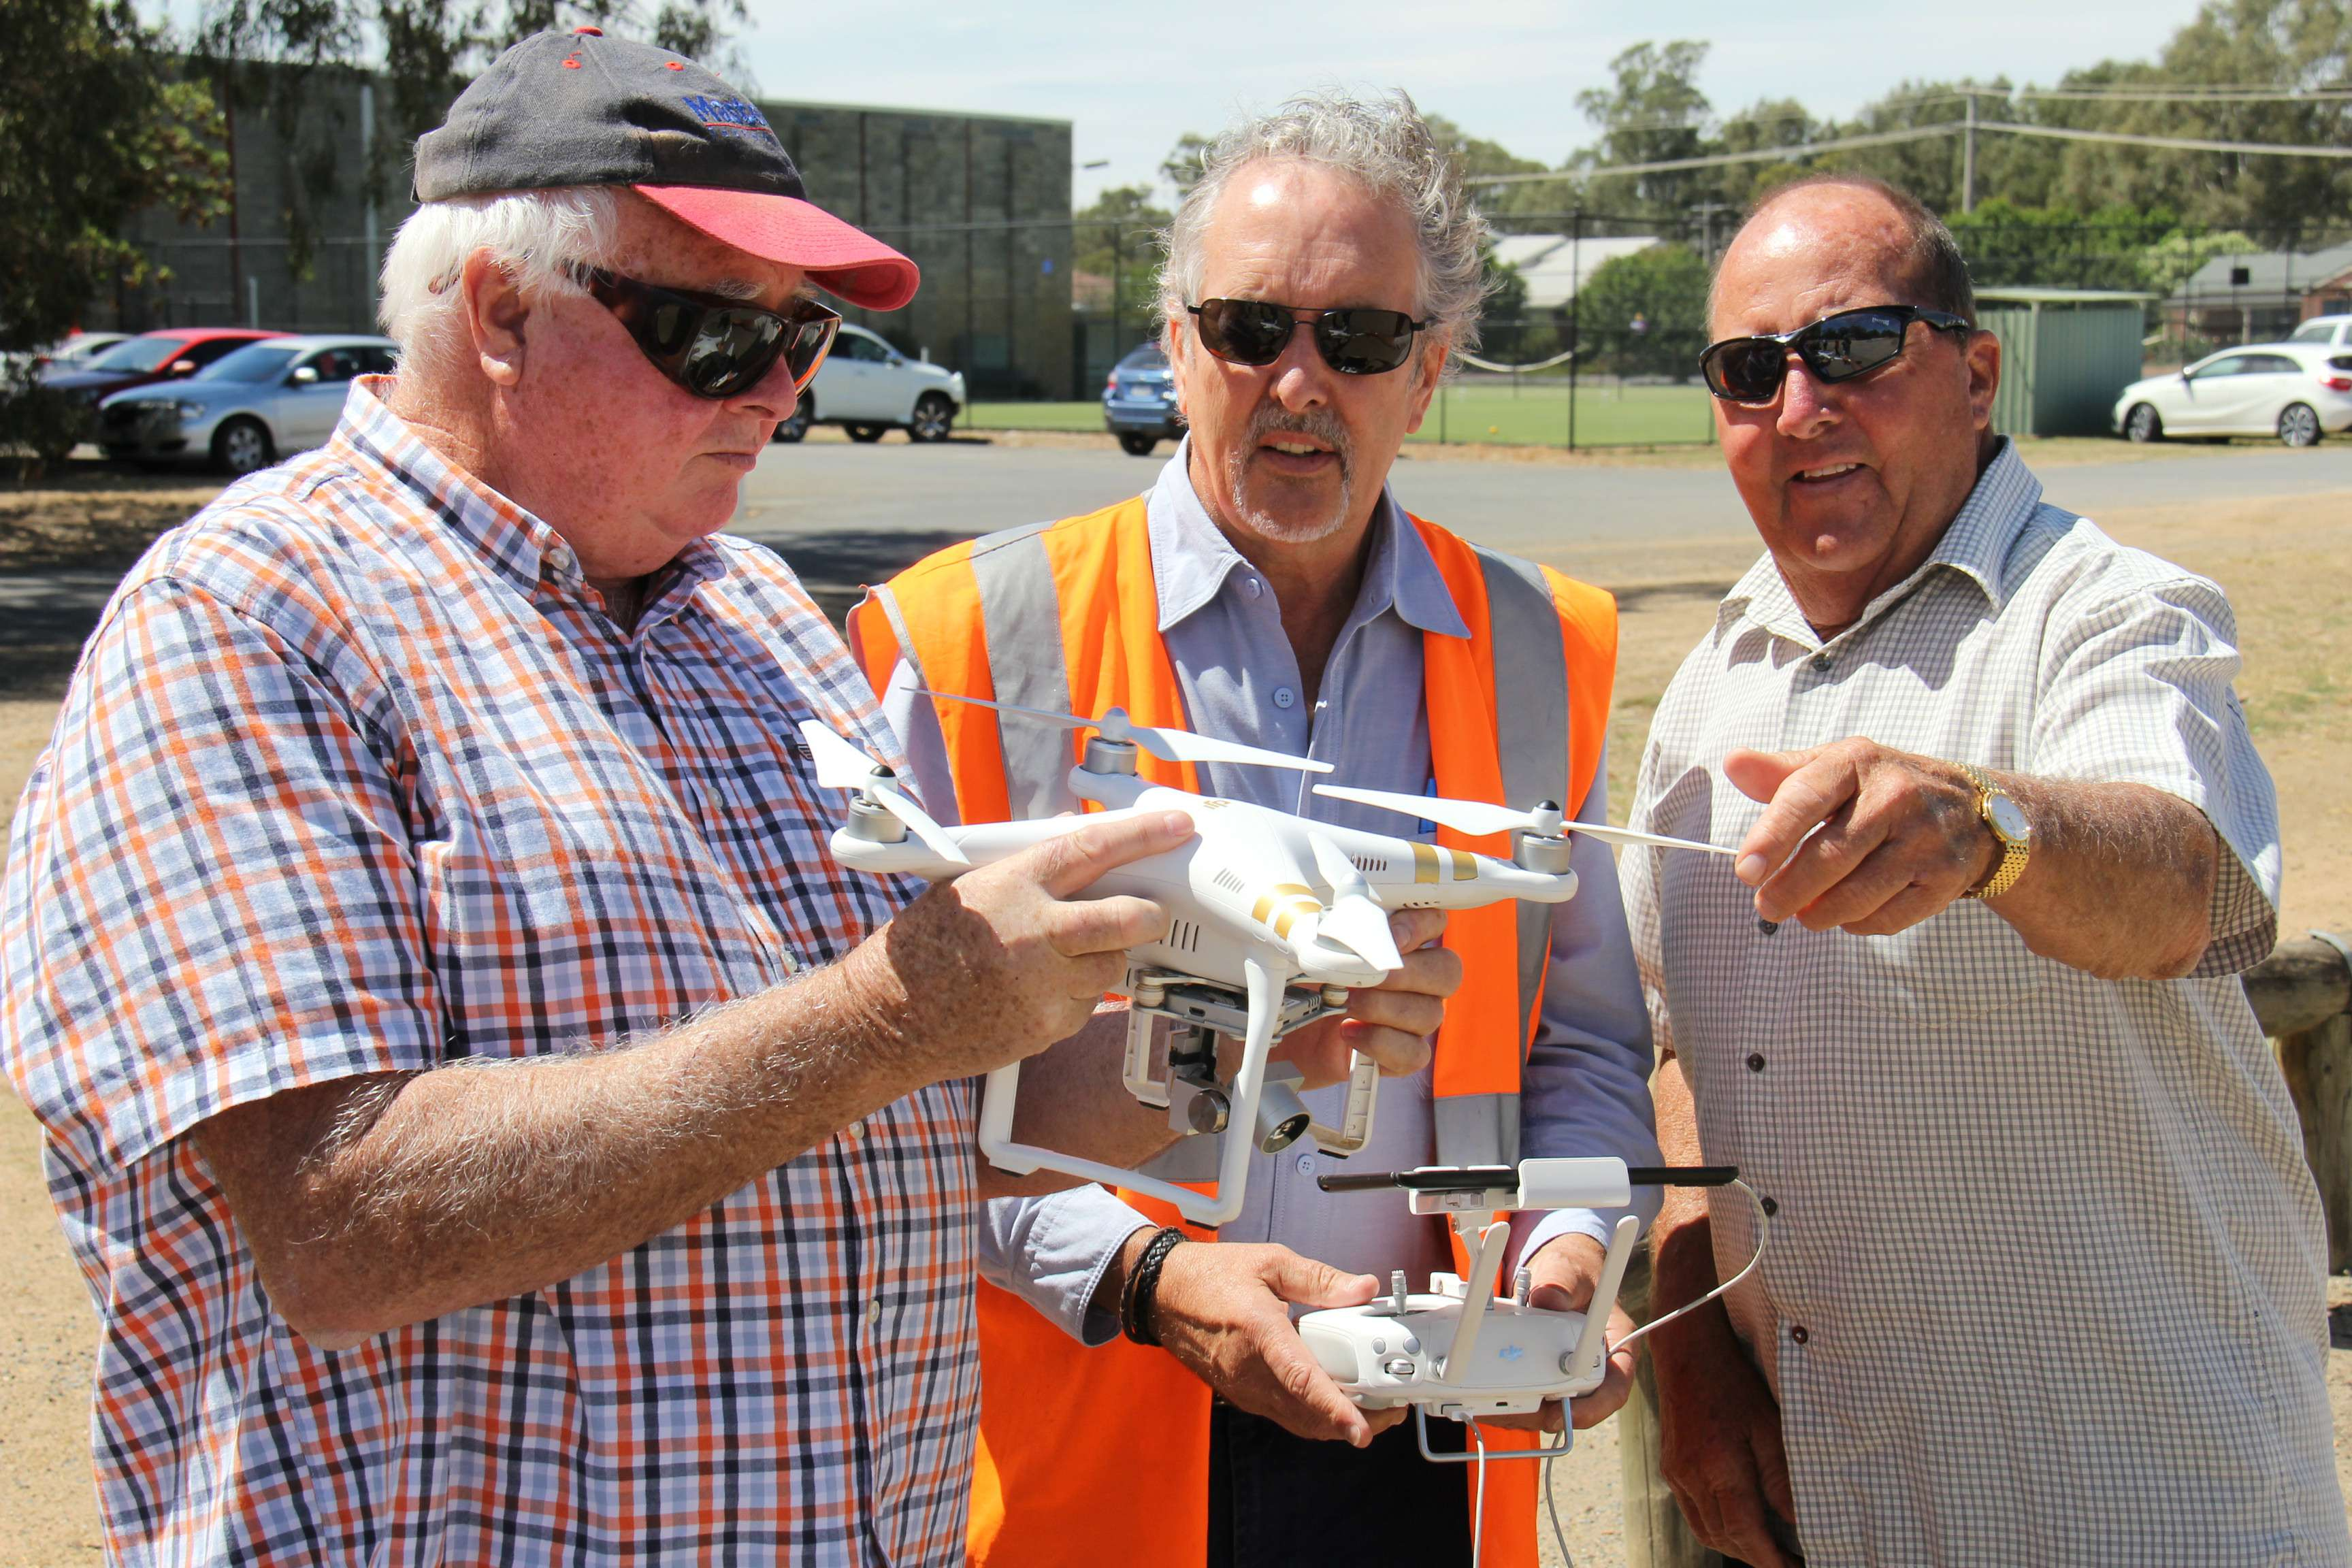 Retired Numurkah farmers John Blackman (left) and Ian Clark are pictured with GMW Draughting Officer and accredited drone pilot Graeme Eadie.